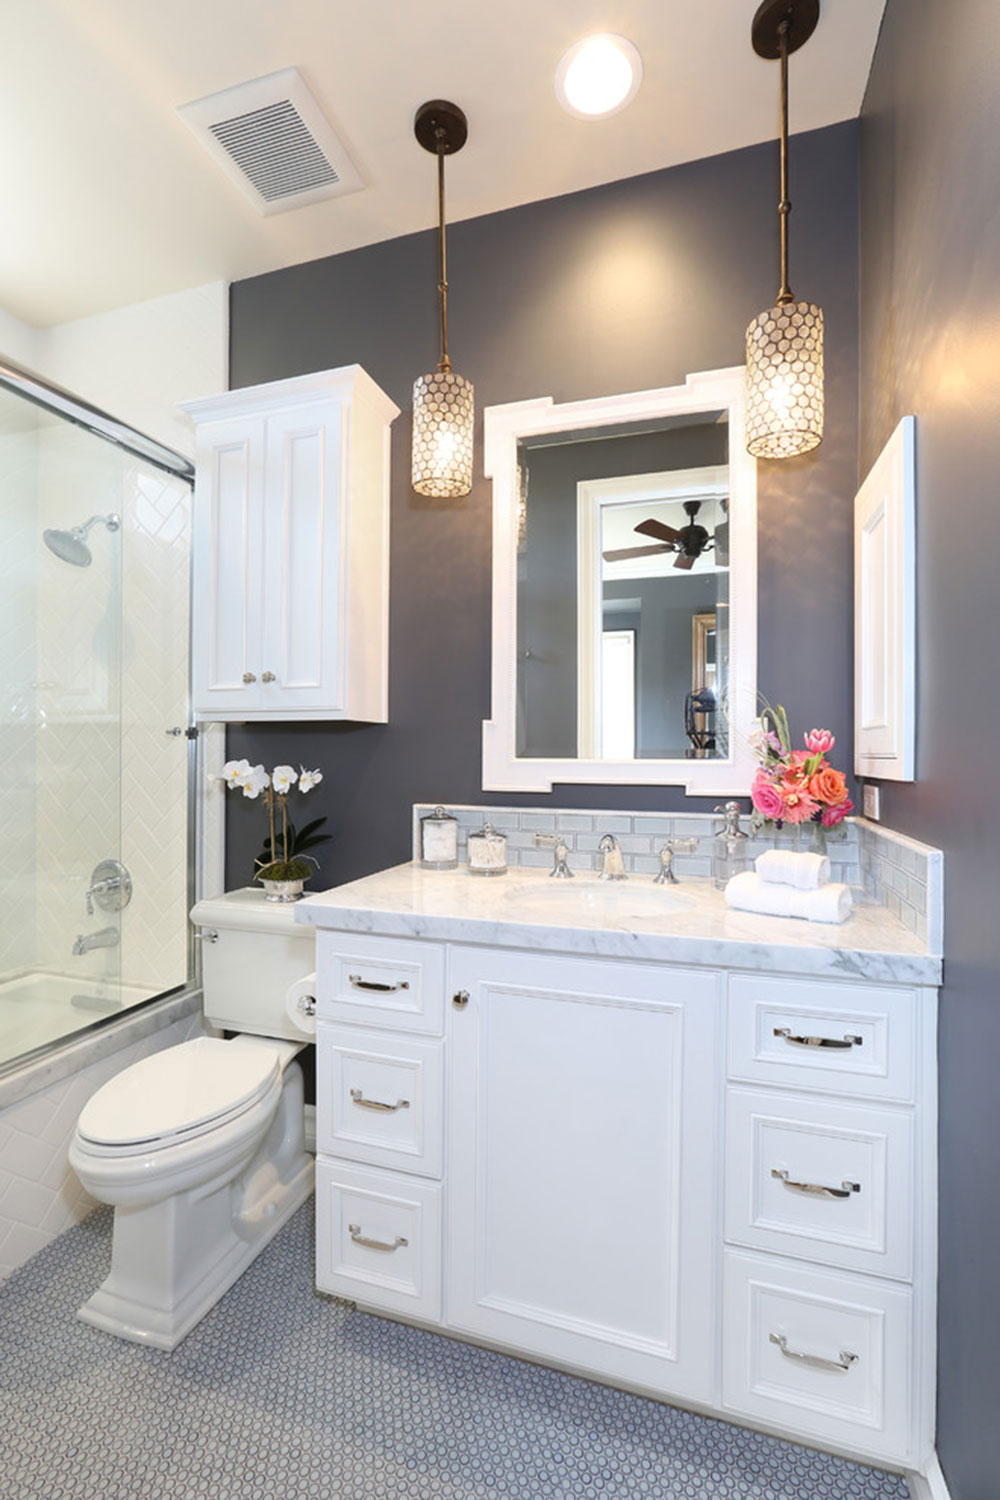 Bathroom Design Tips how to make a small bathroom look bigger - tips and ideas